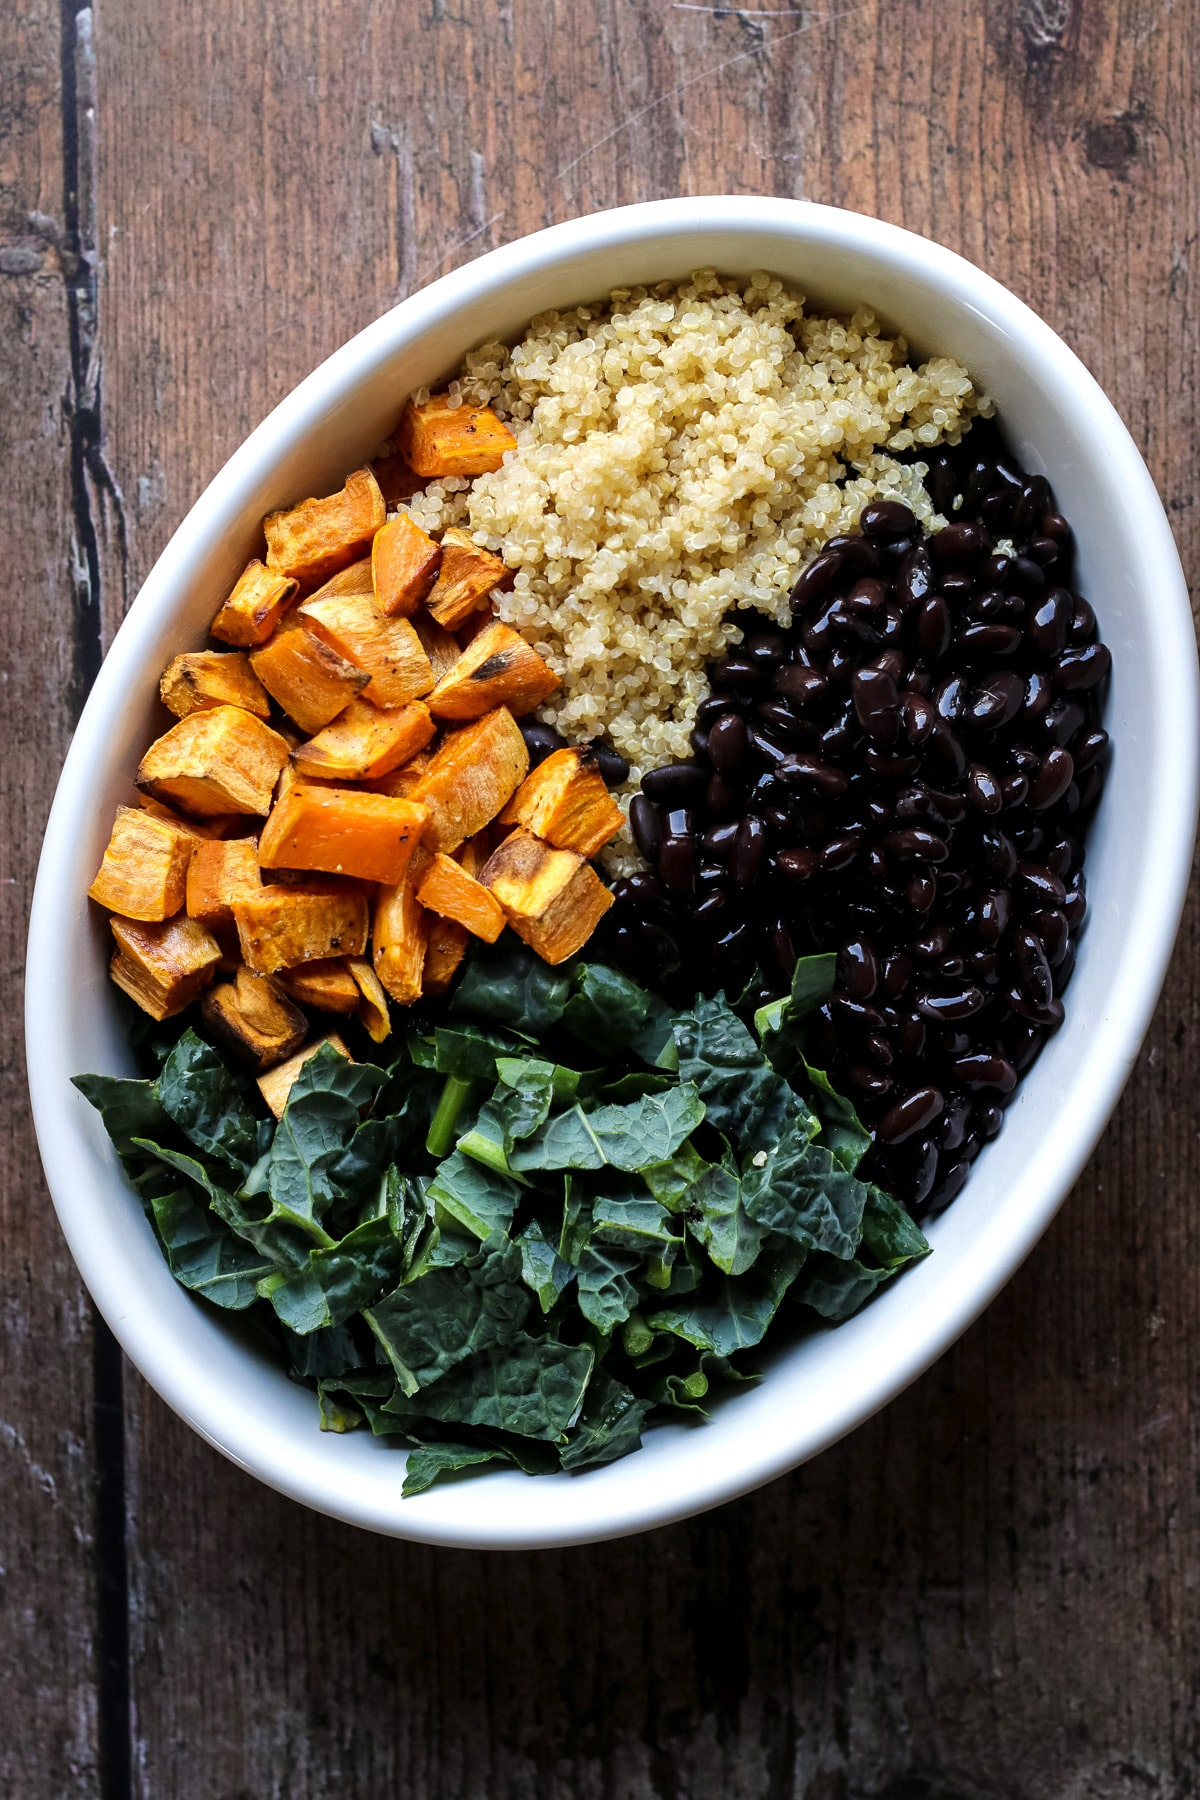 Sweet potato casserole with kale black beans and quinoa before adding the sauce.